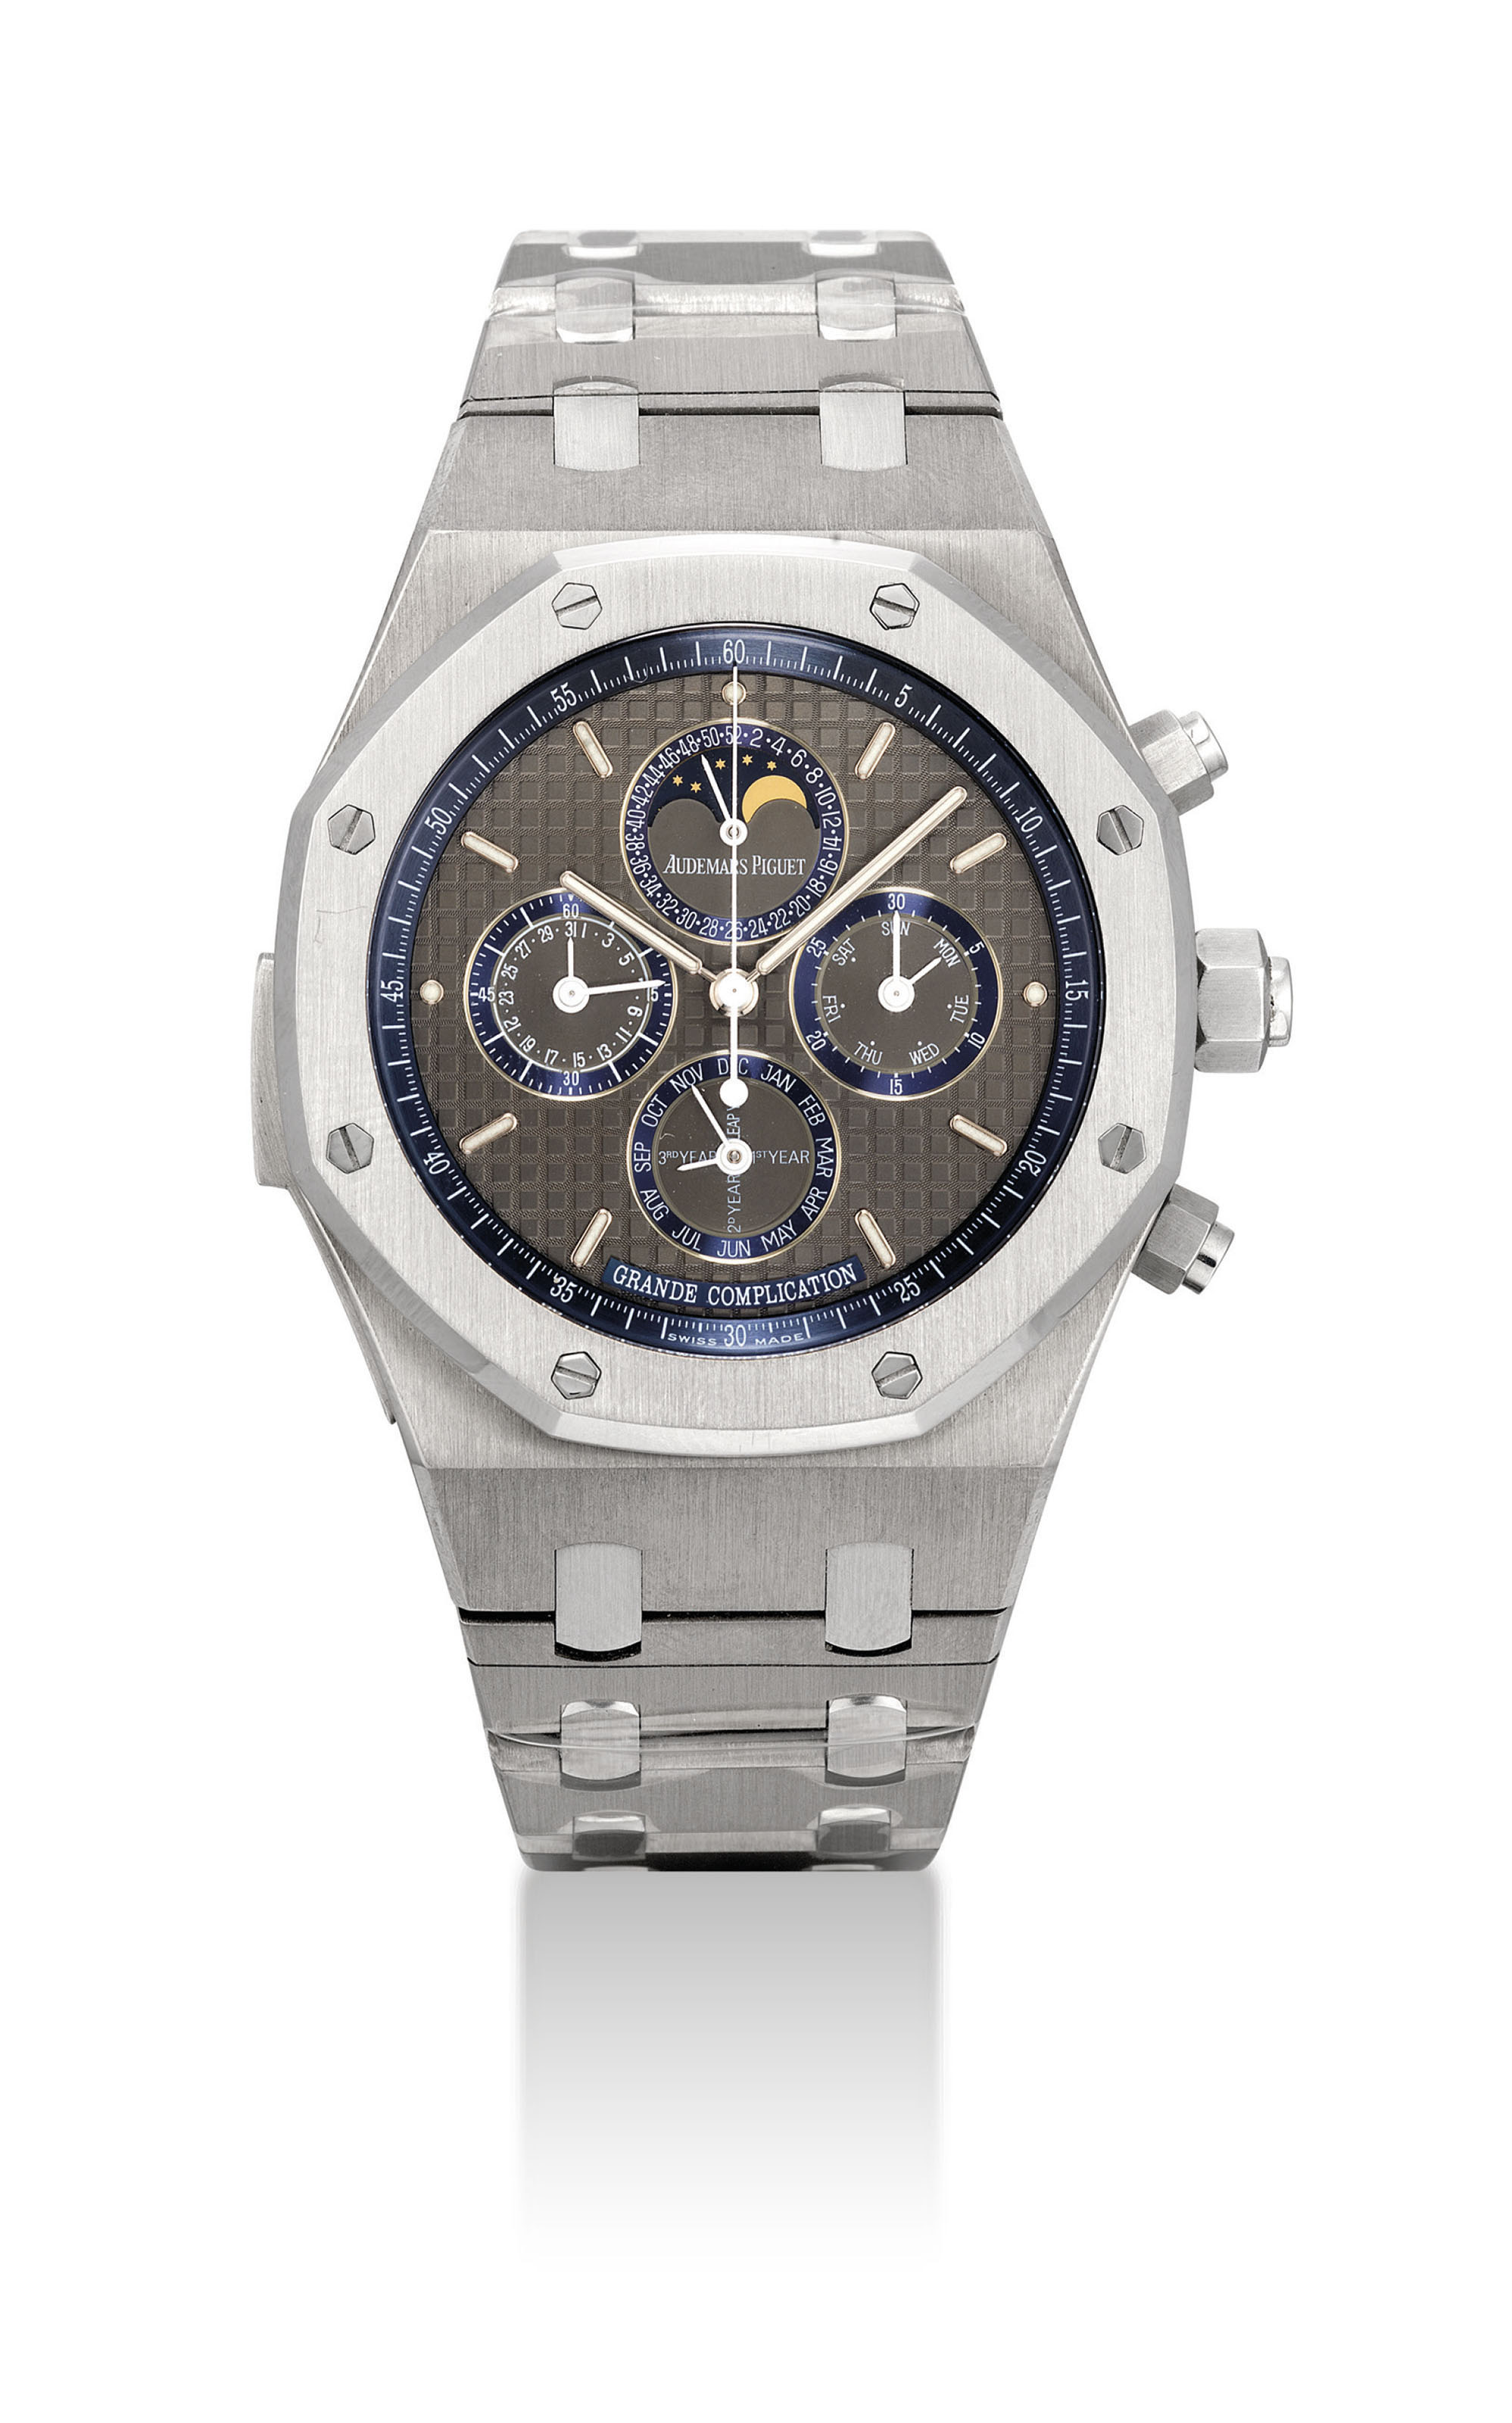 AUDEMARS PIGUET. AN EXTREMELY RARE AND IMPRESSIVE TITANIUM AUTOMATIC MINUTE REPEATING PERPETUAL CALENDAR SPLIT SECONDS CHRONOGRAPH WRISTWATCH WITH WEEK AND LEAP YEAR INDICATION AND MOON PHASES